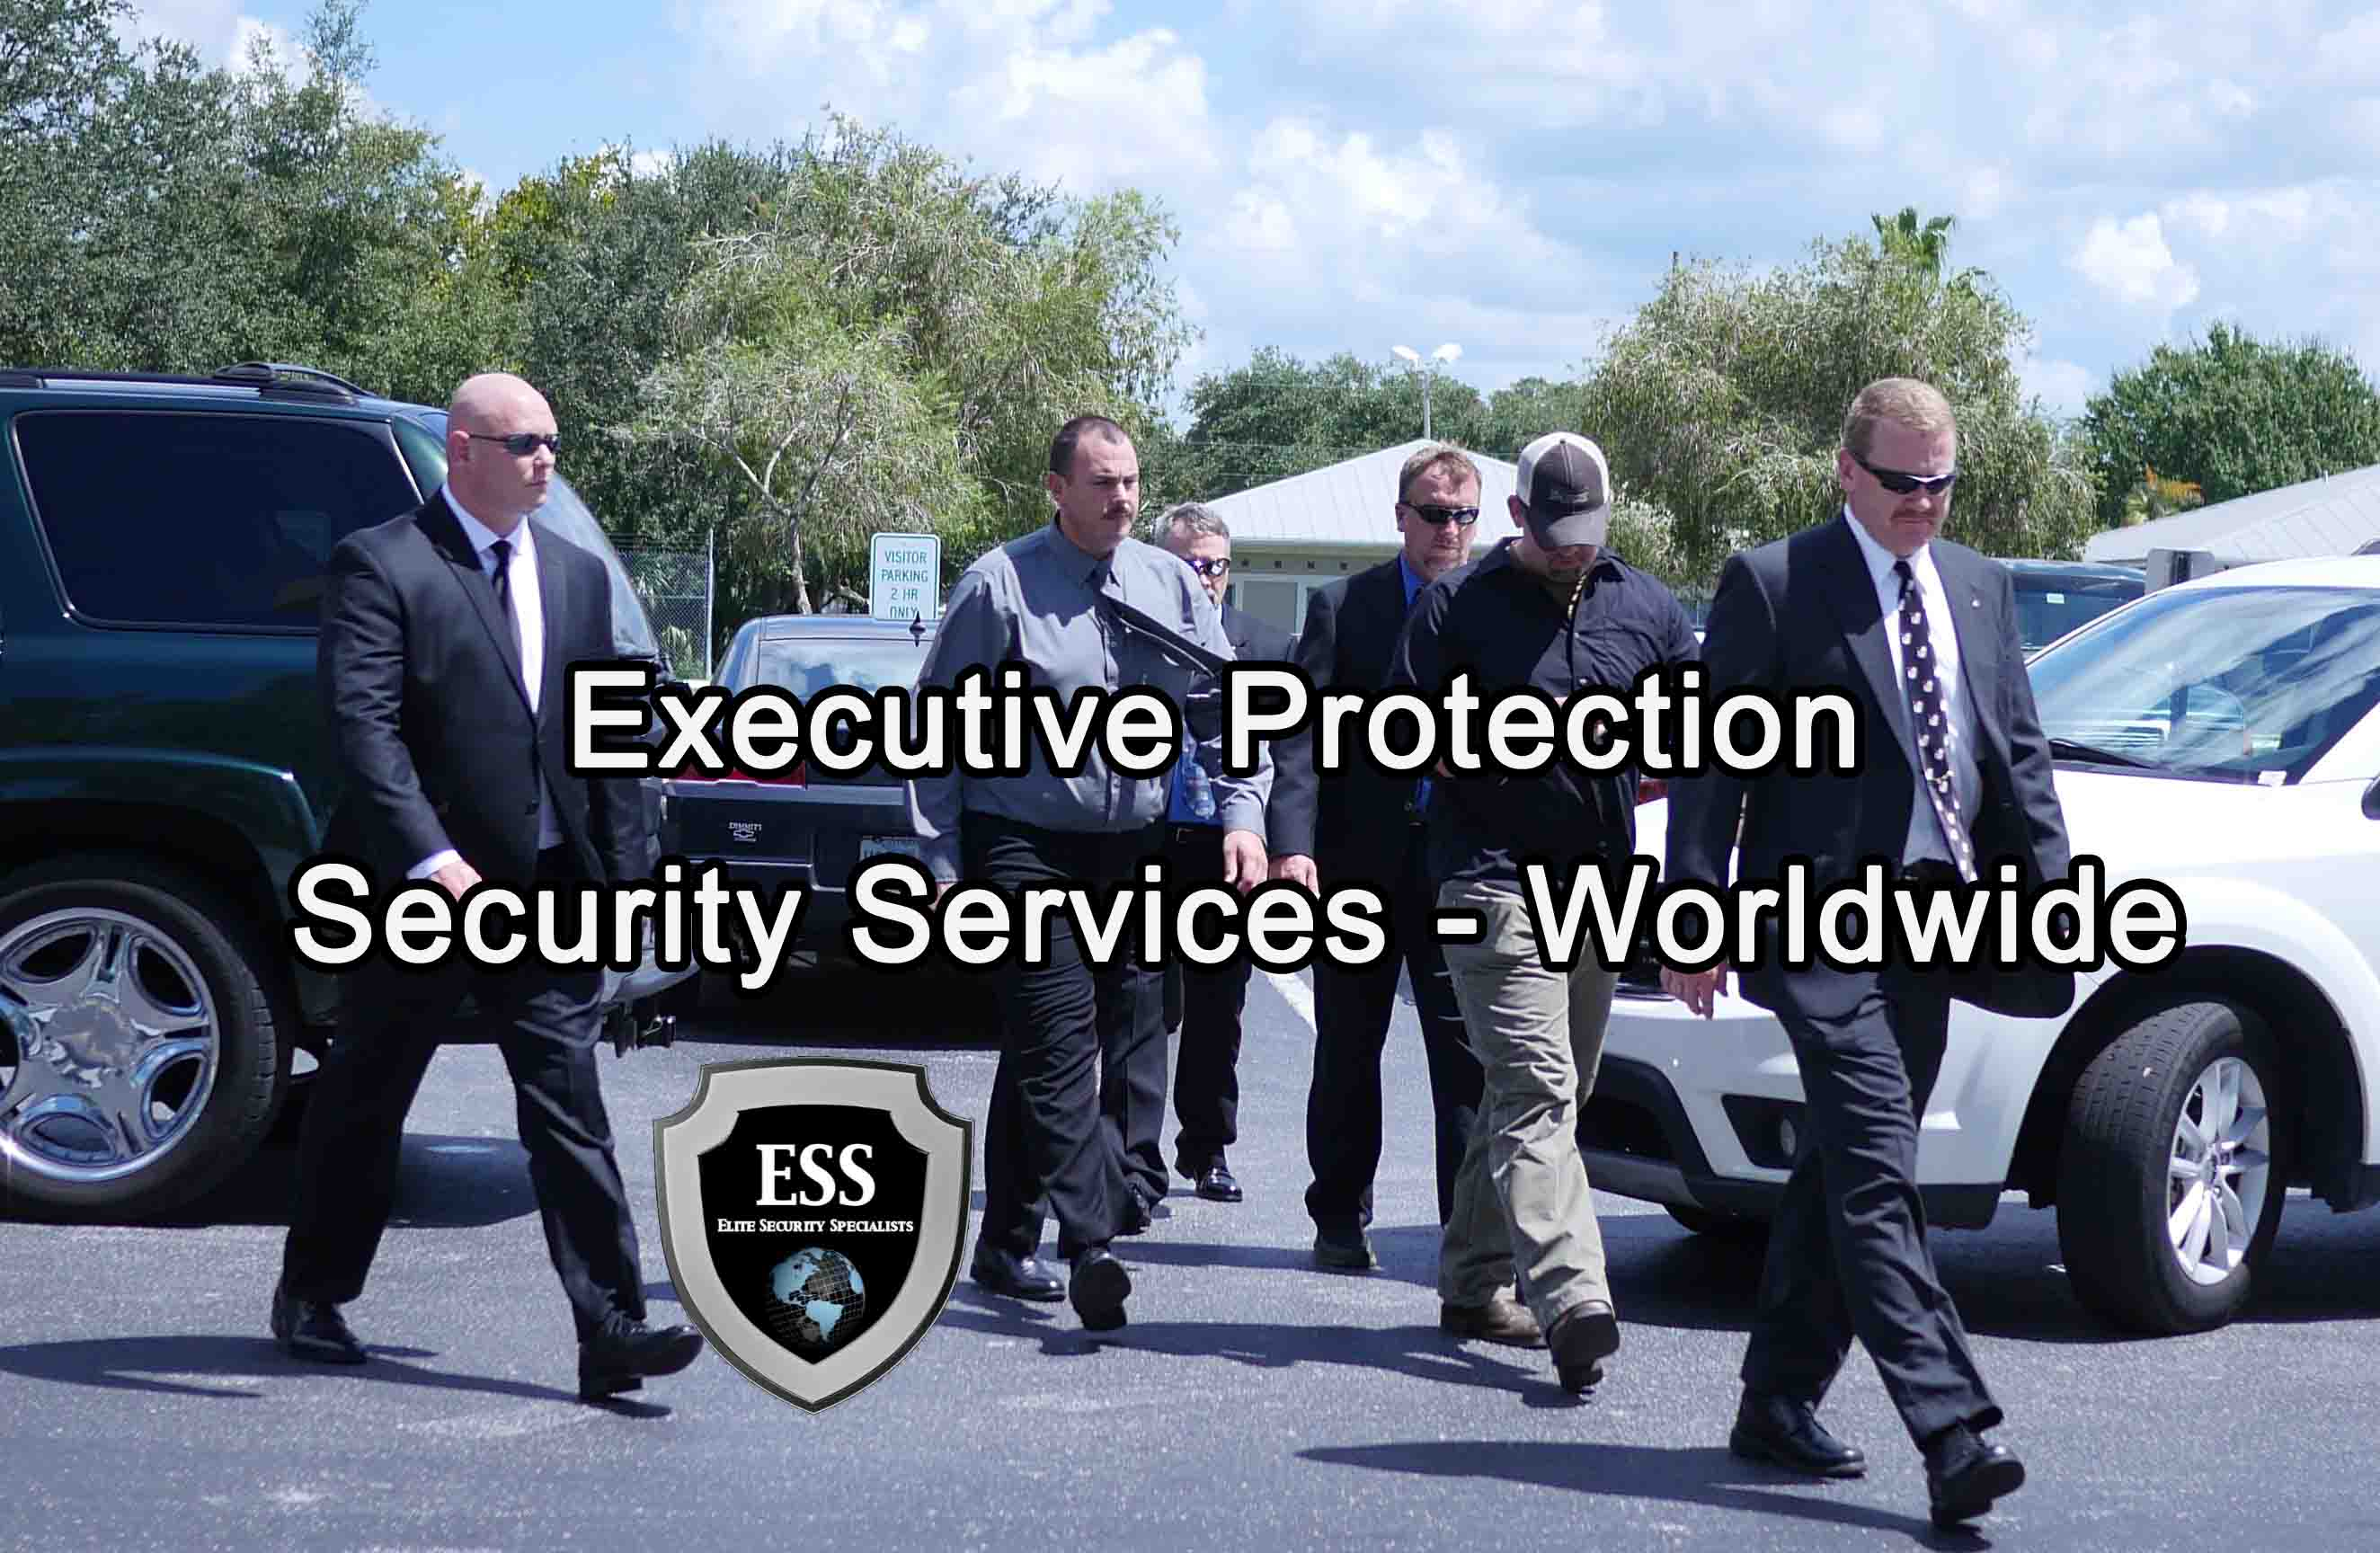 Executive Protection Security Services - Worldwide - ESS